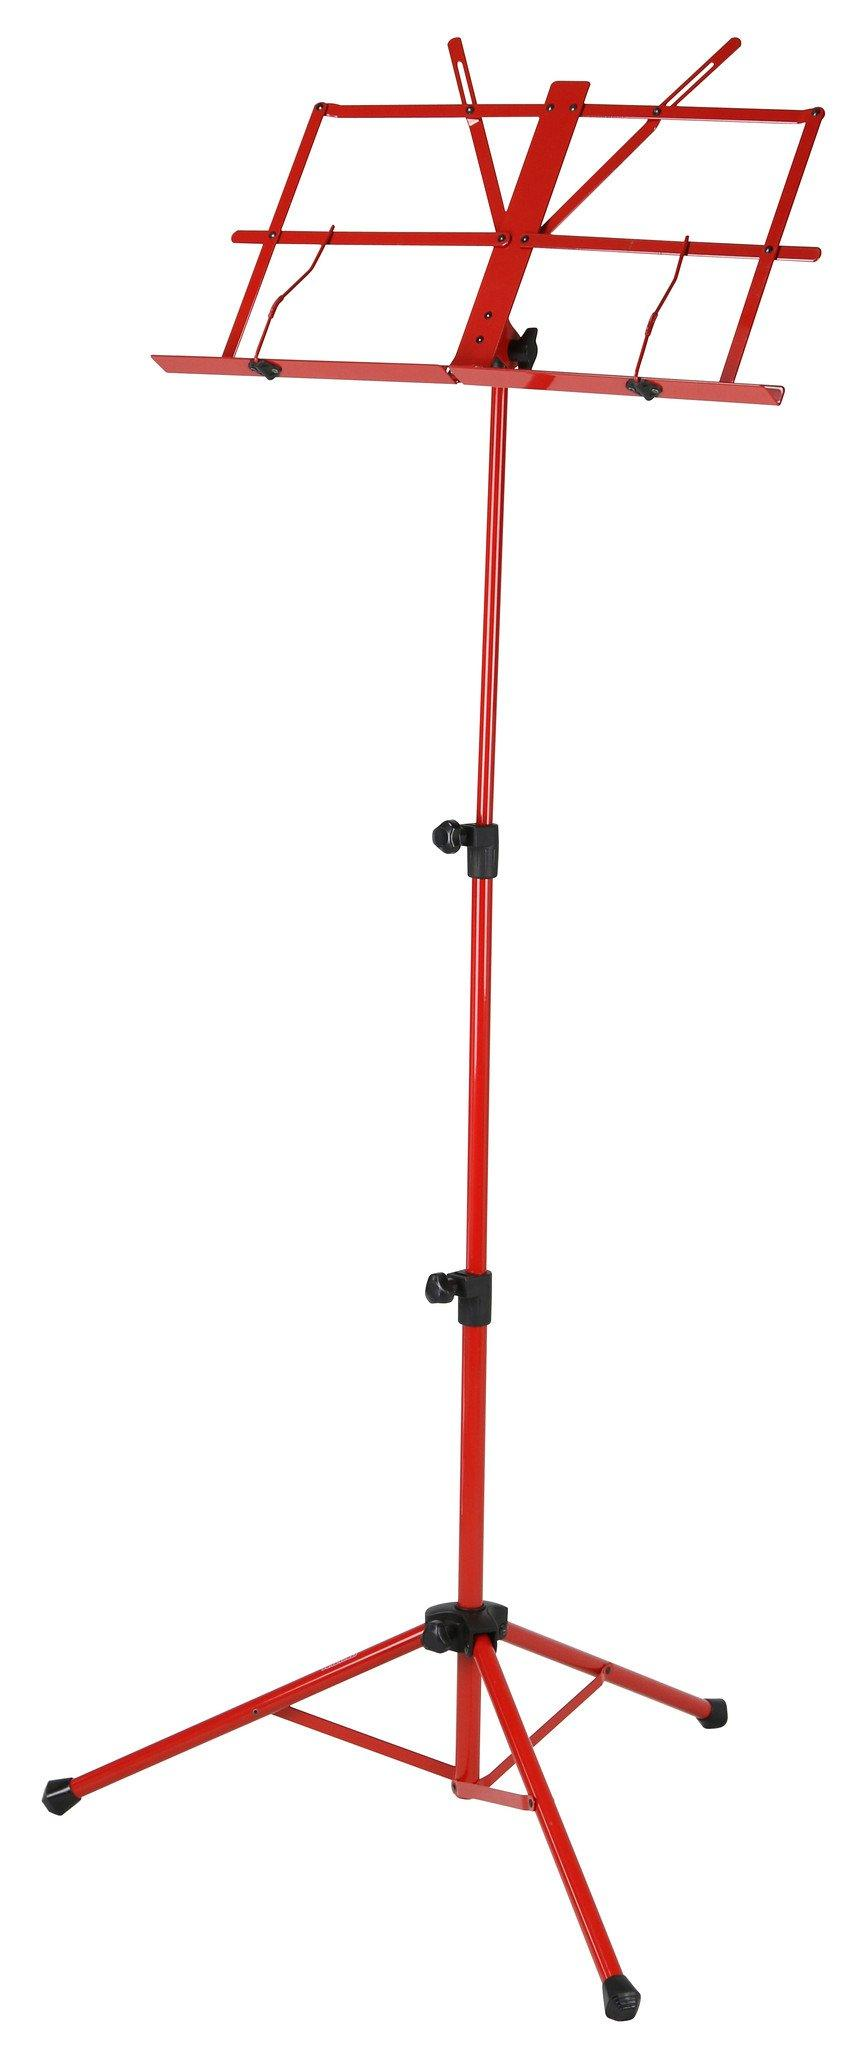 Deluxe 3-Part Folding Music Stand W/Bag - Red